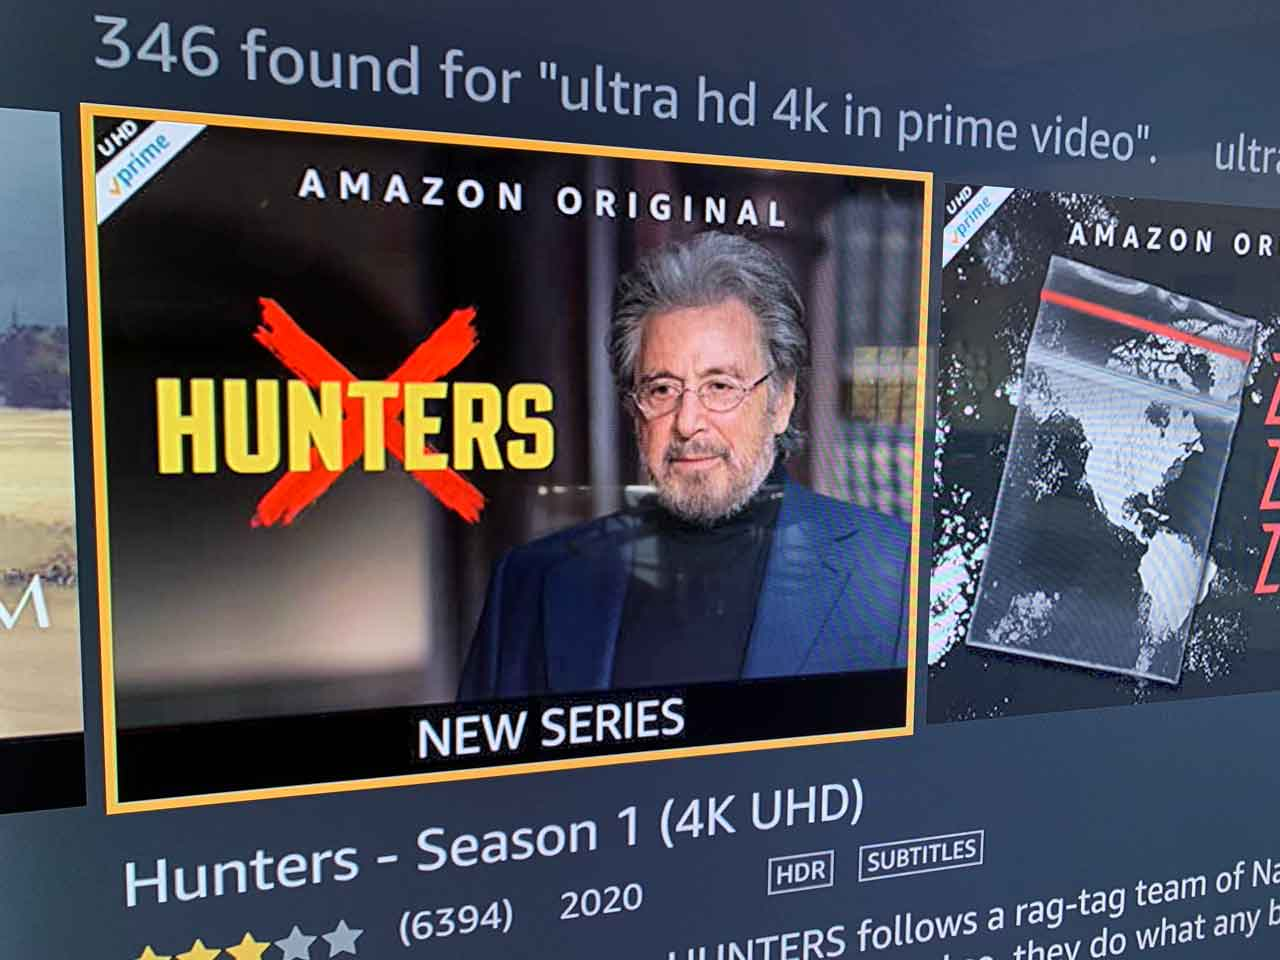 How To Watch 4k Ultra Hd Movies Tv Shows On Amazon Prime Video Updated Hd Report